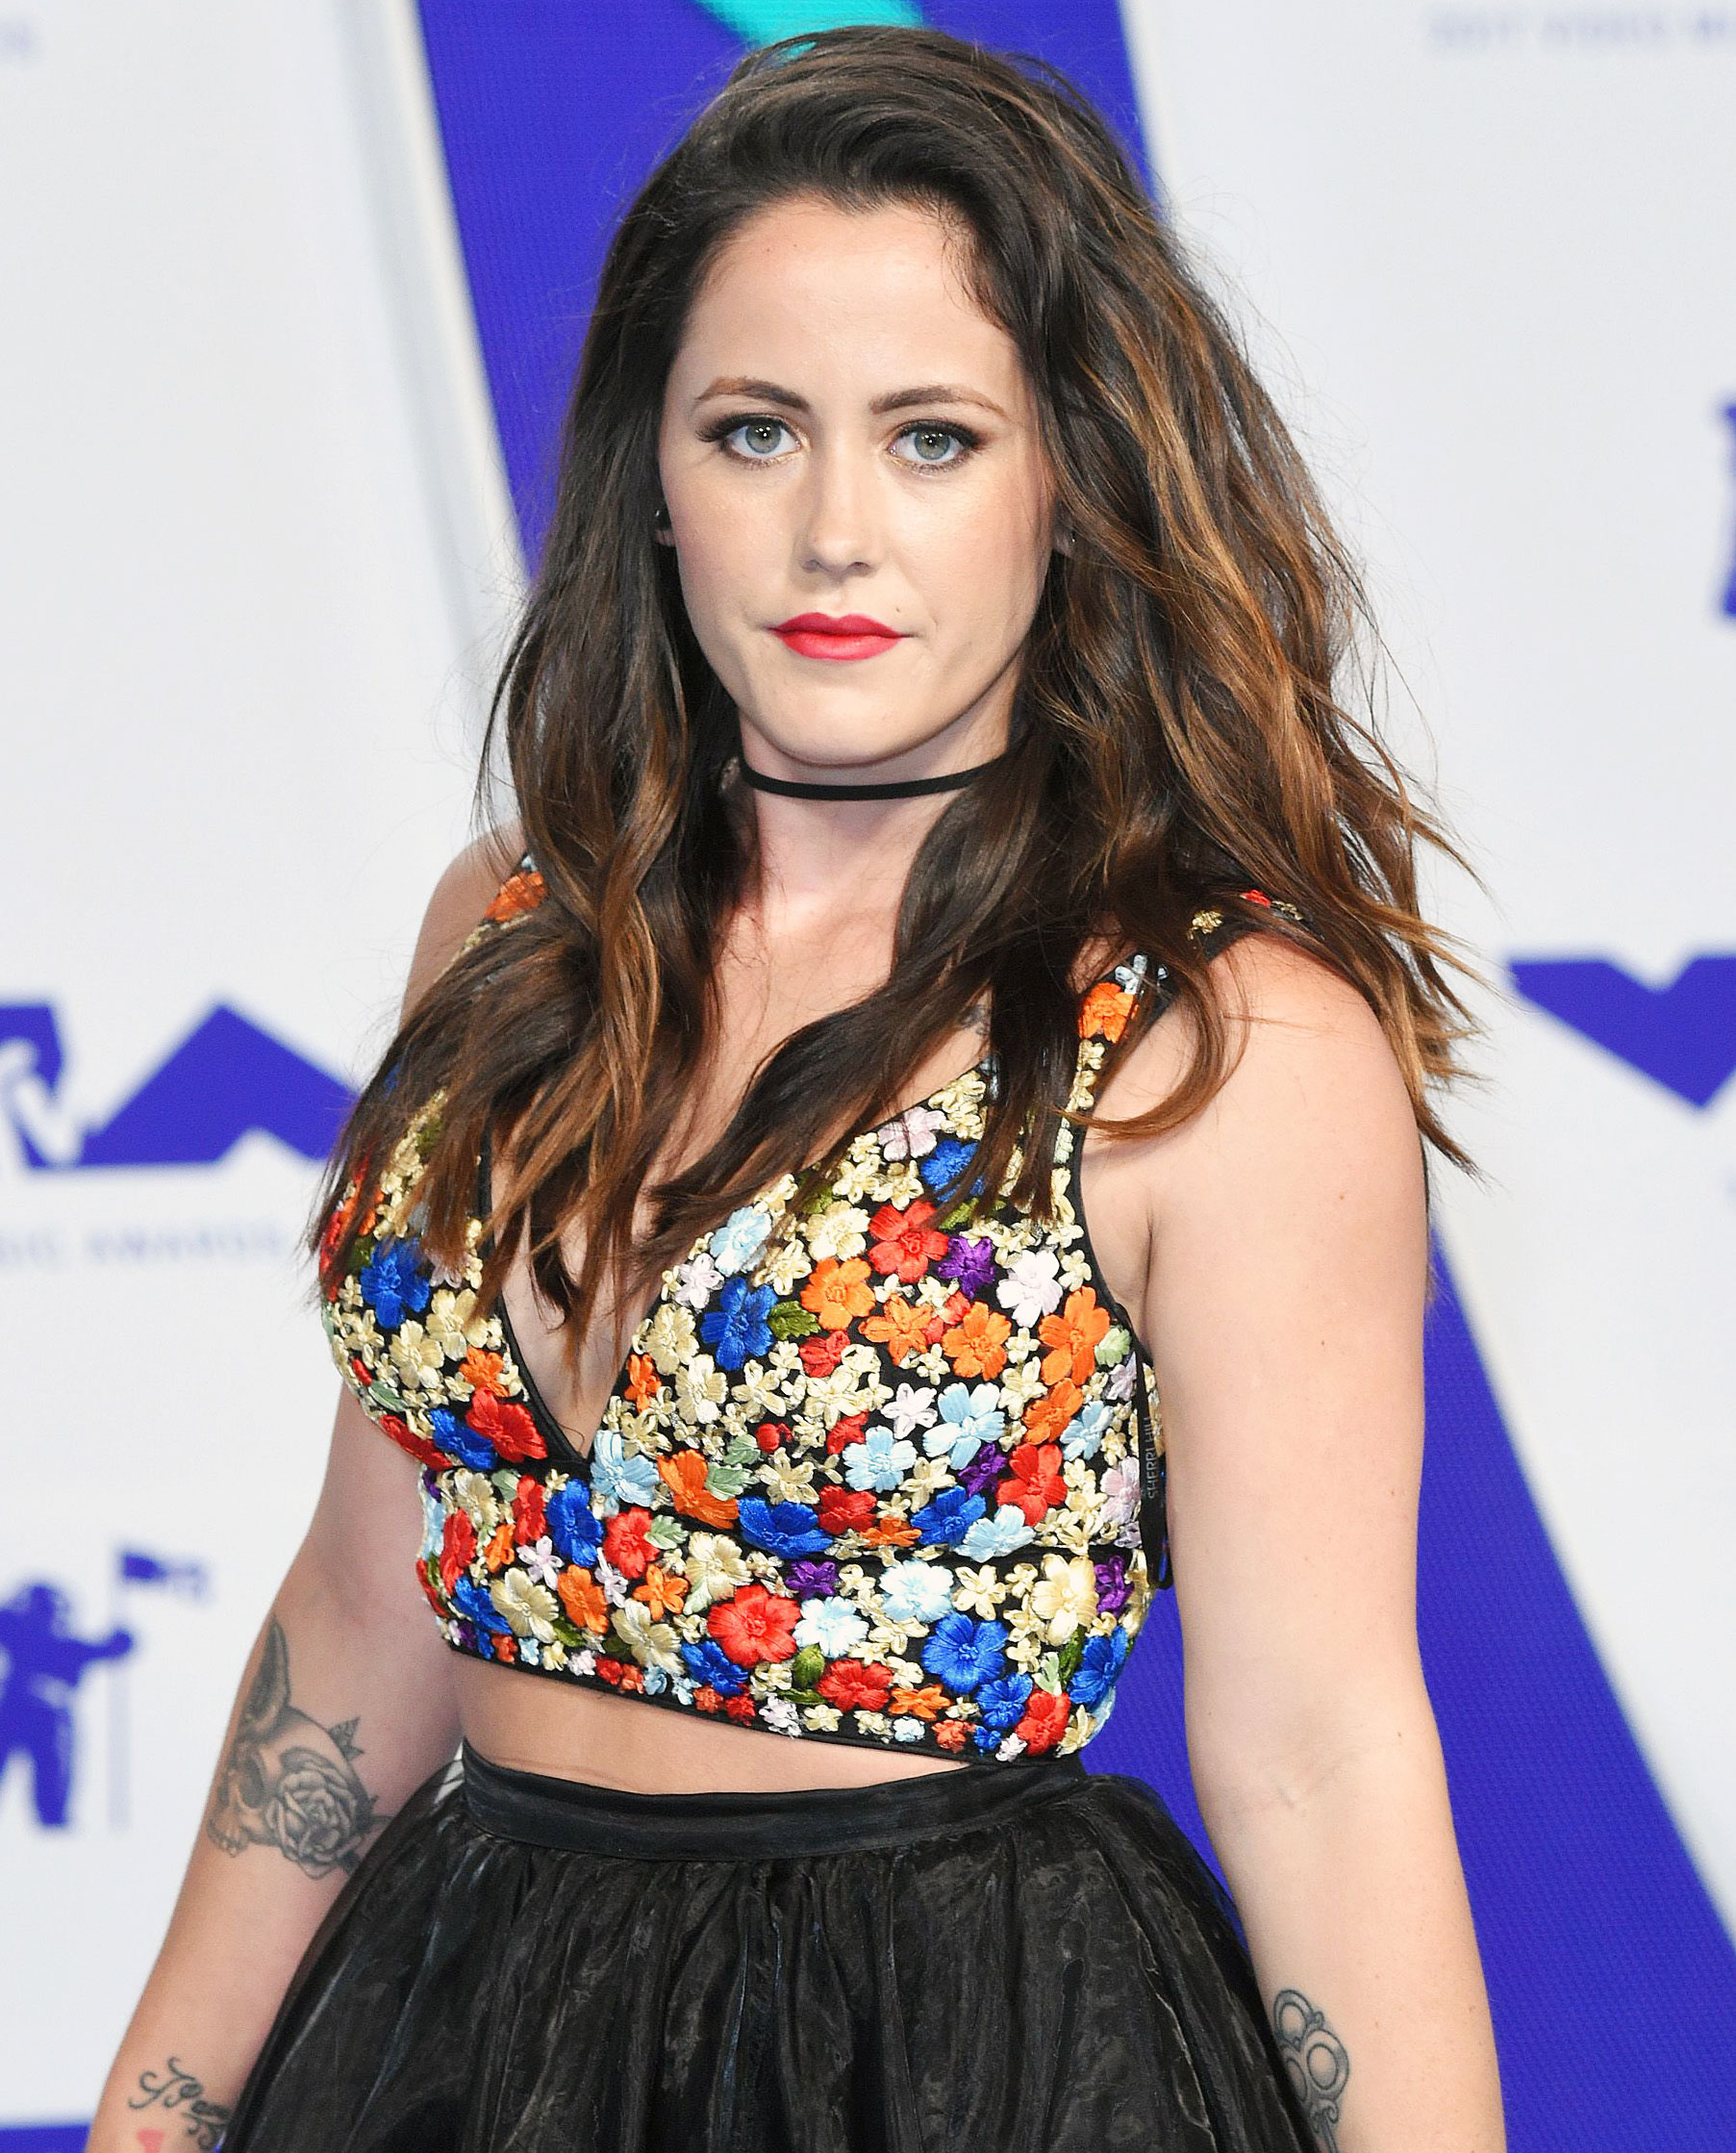 Jenelle Evans Opens Up About Feeling Anxious and Depressed Due to Online Backlash